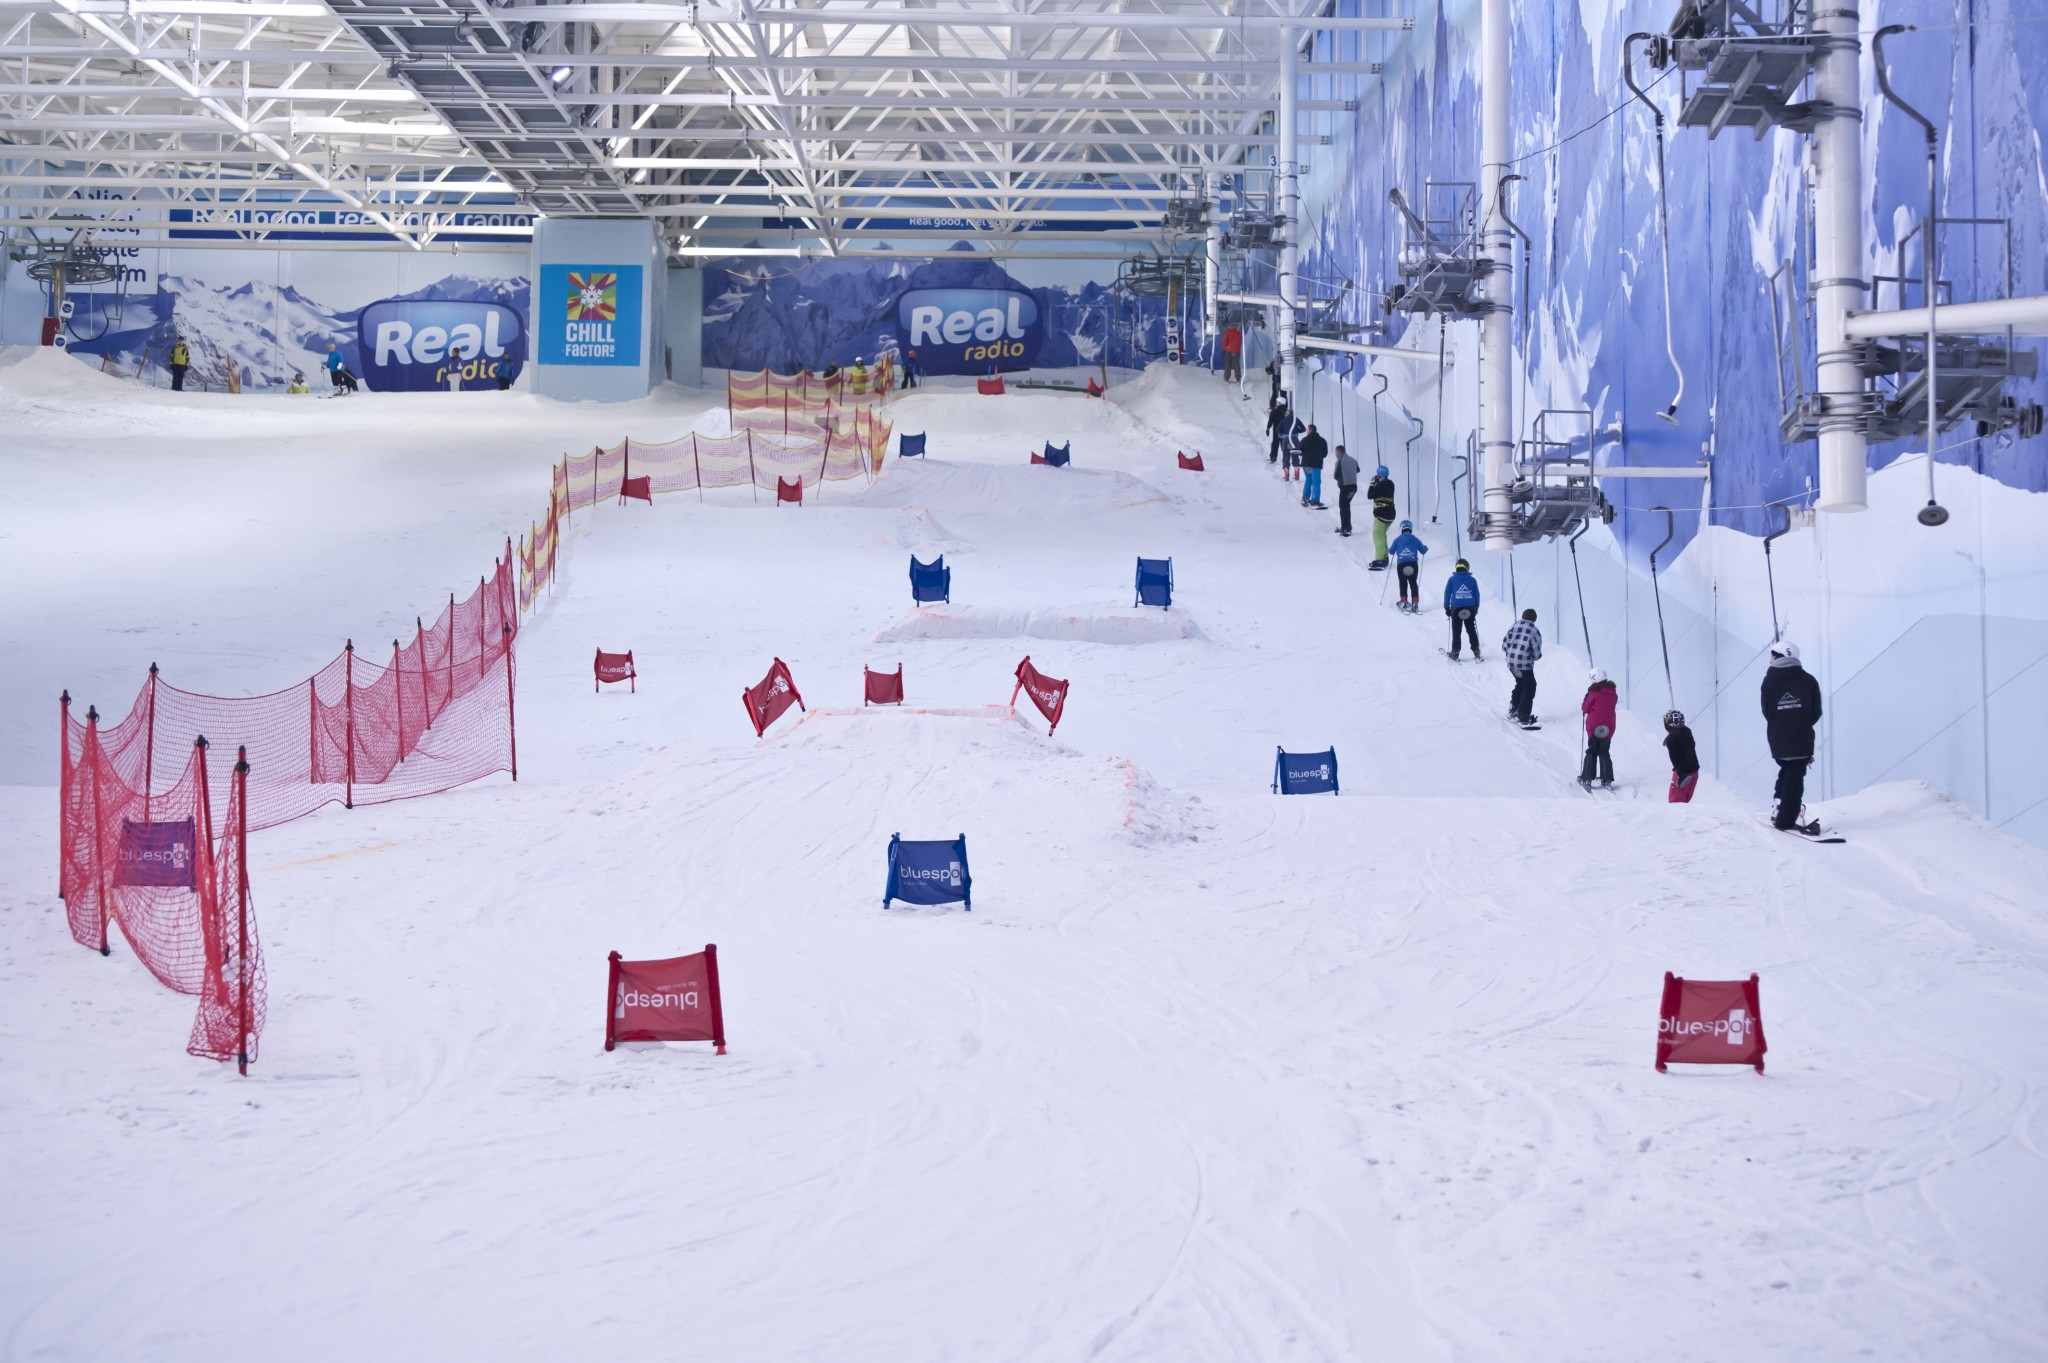 Chill Factore Skiiing and Snowboarding